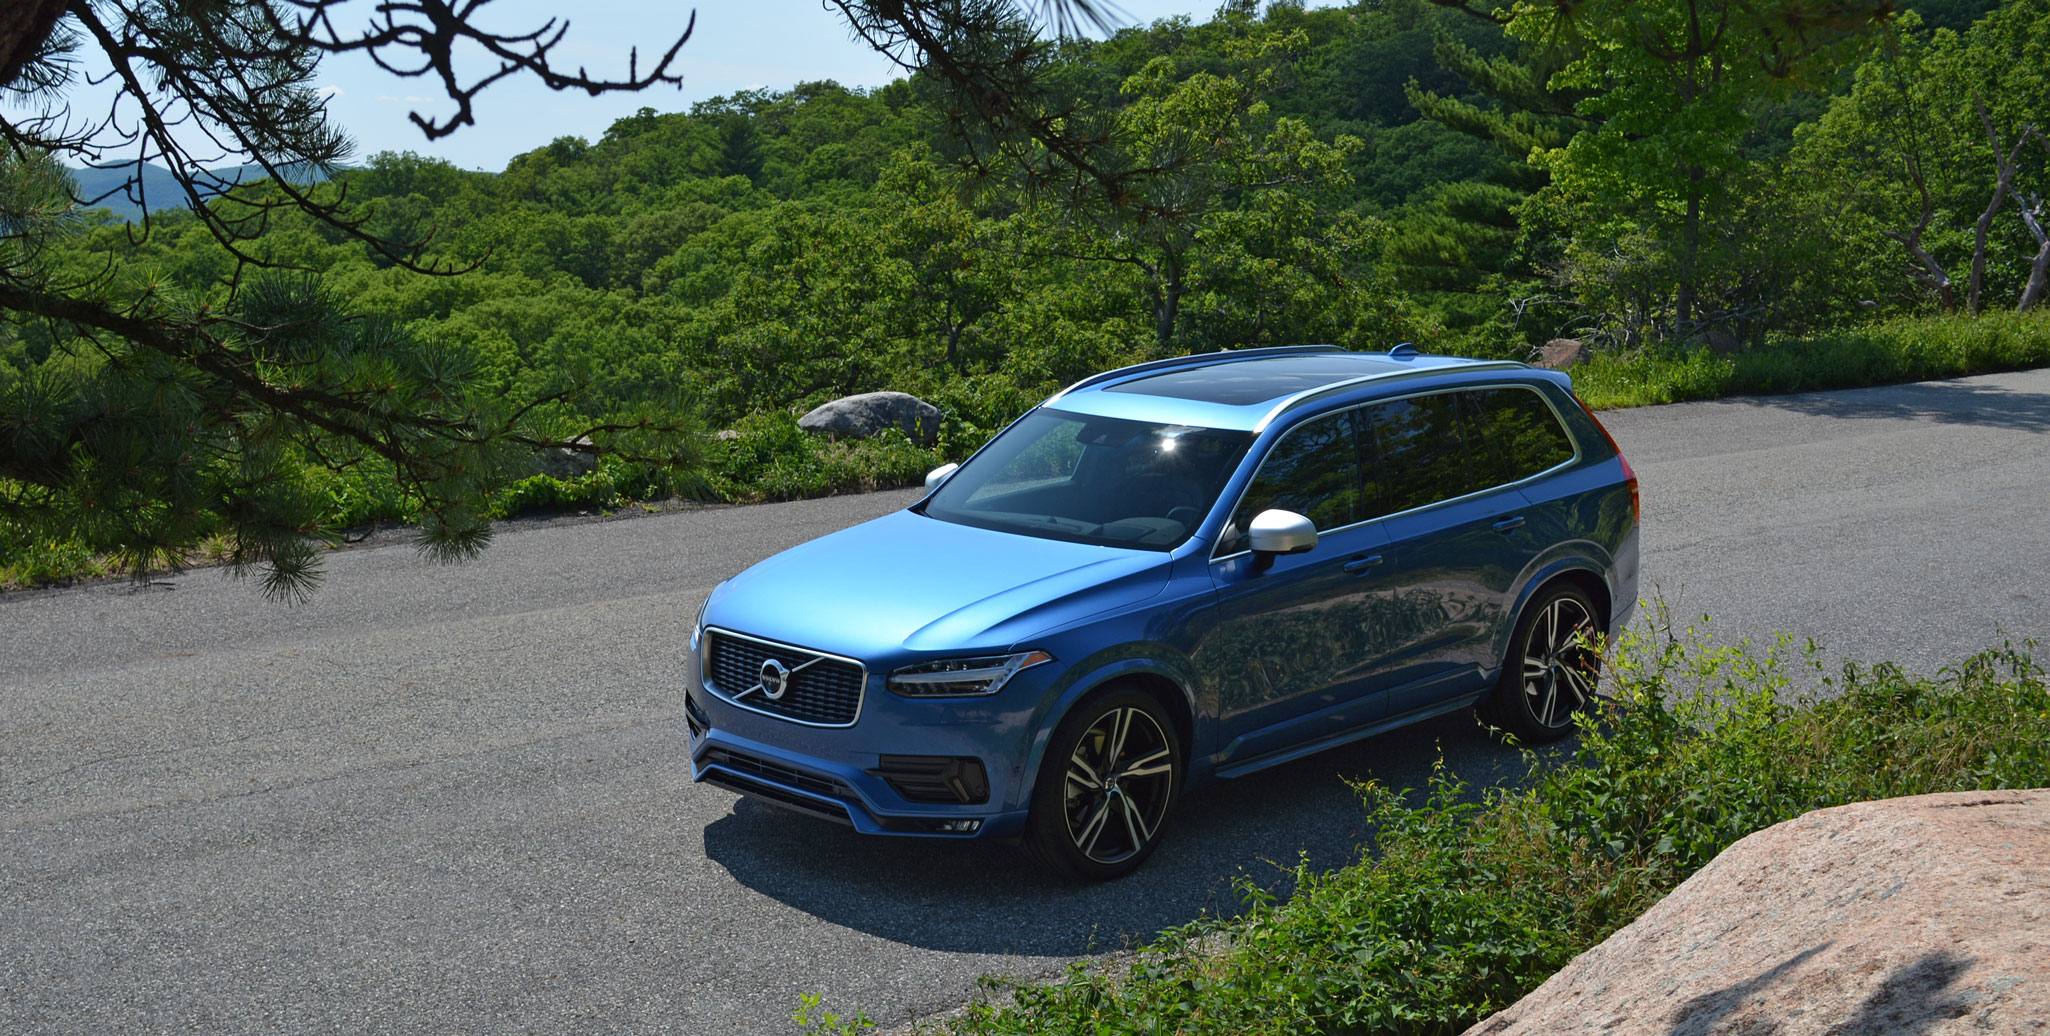 Volvo announces updates for XC90 and S90